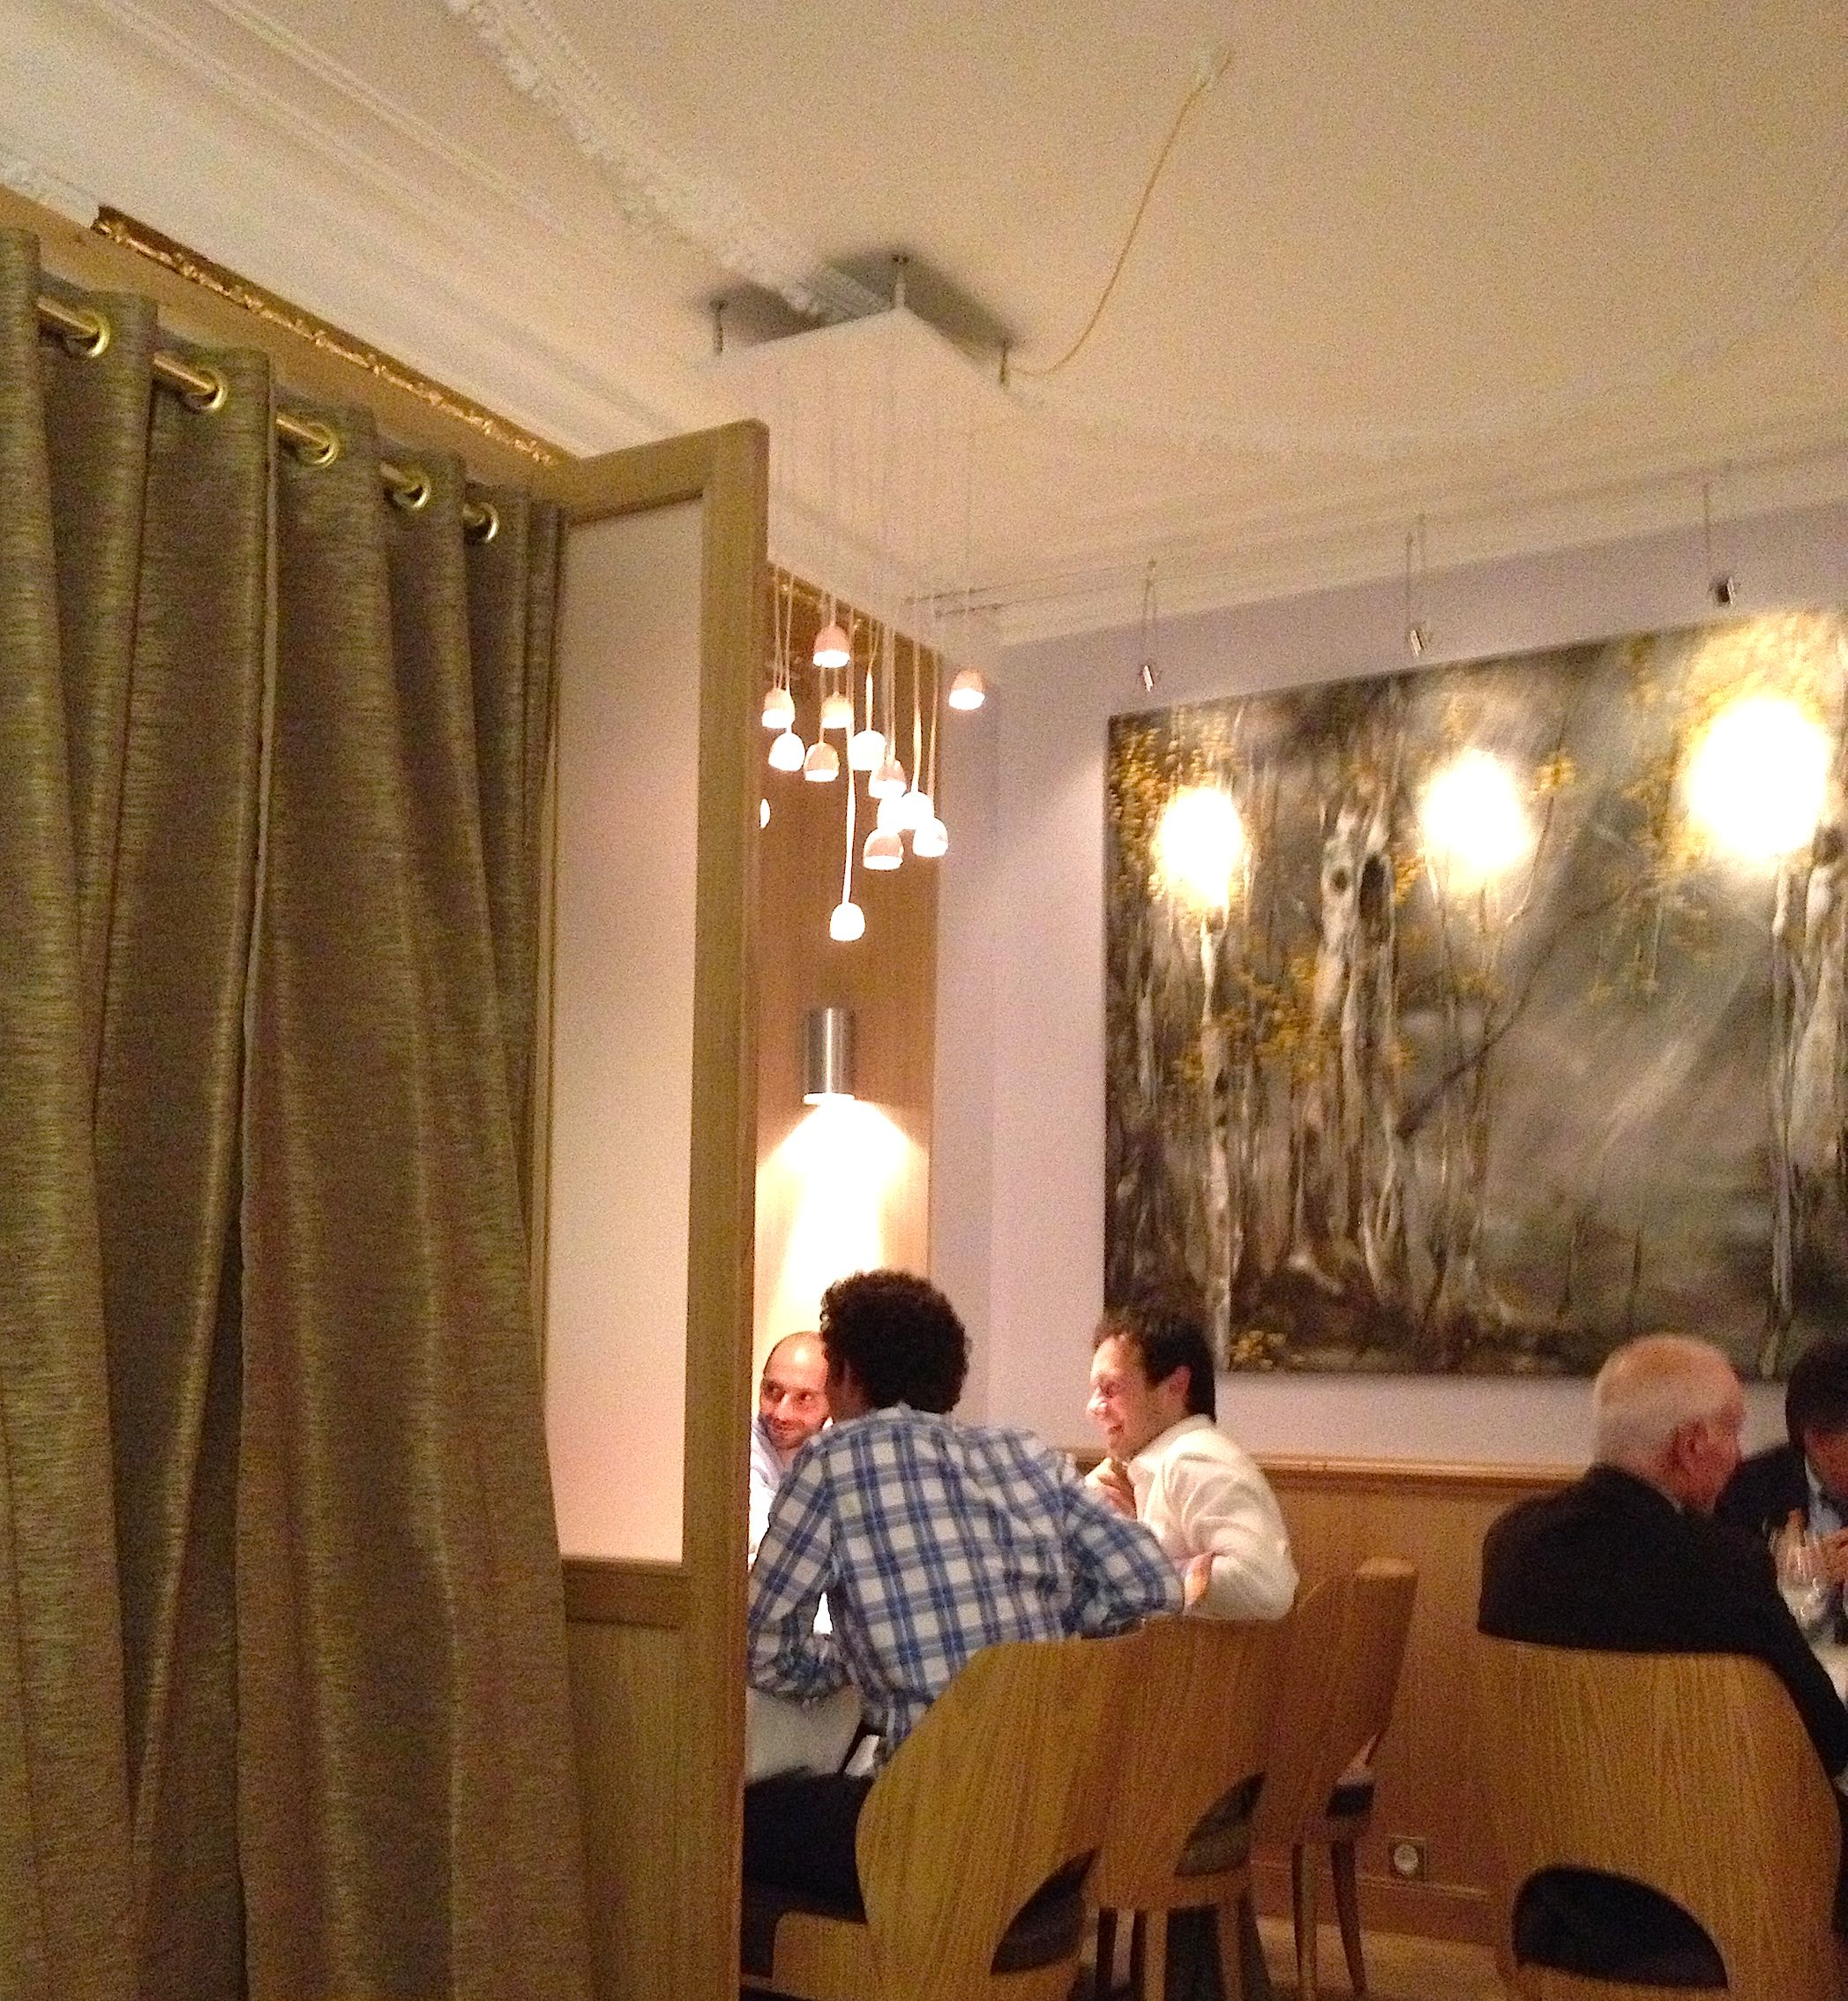 Cool Places To Eat In La: LA TABLE D'EUGENE--The One Great Place To Eat In